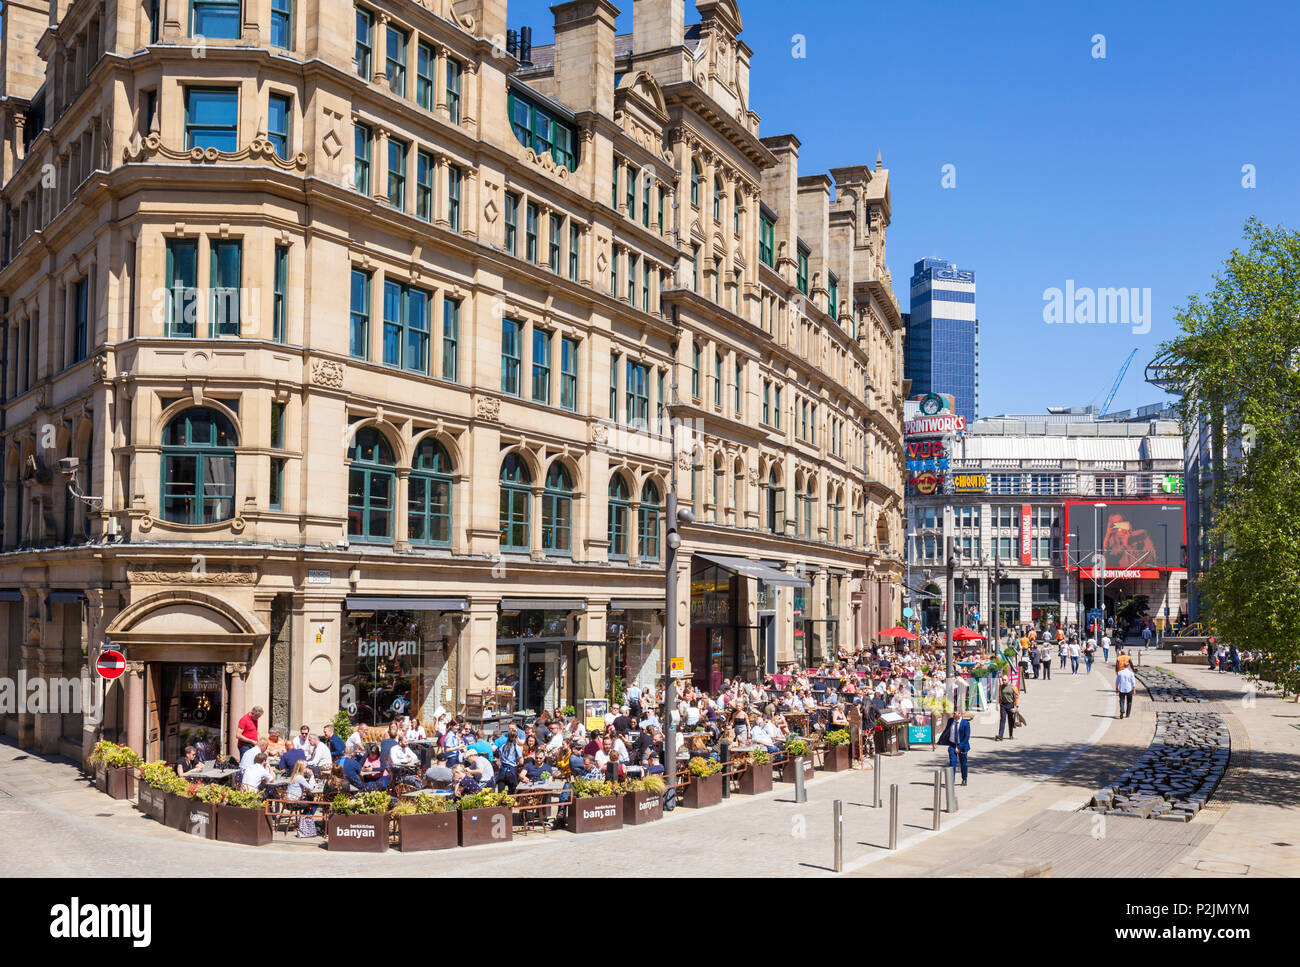 England Manchester England greater Manchester City centre city center people enjoying dining outside in the Exchange square manchester city centre uk - Stock Image